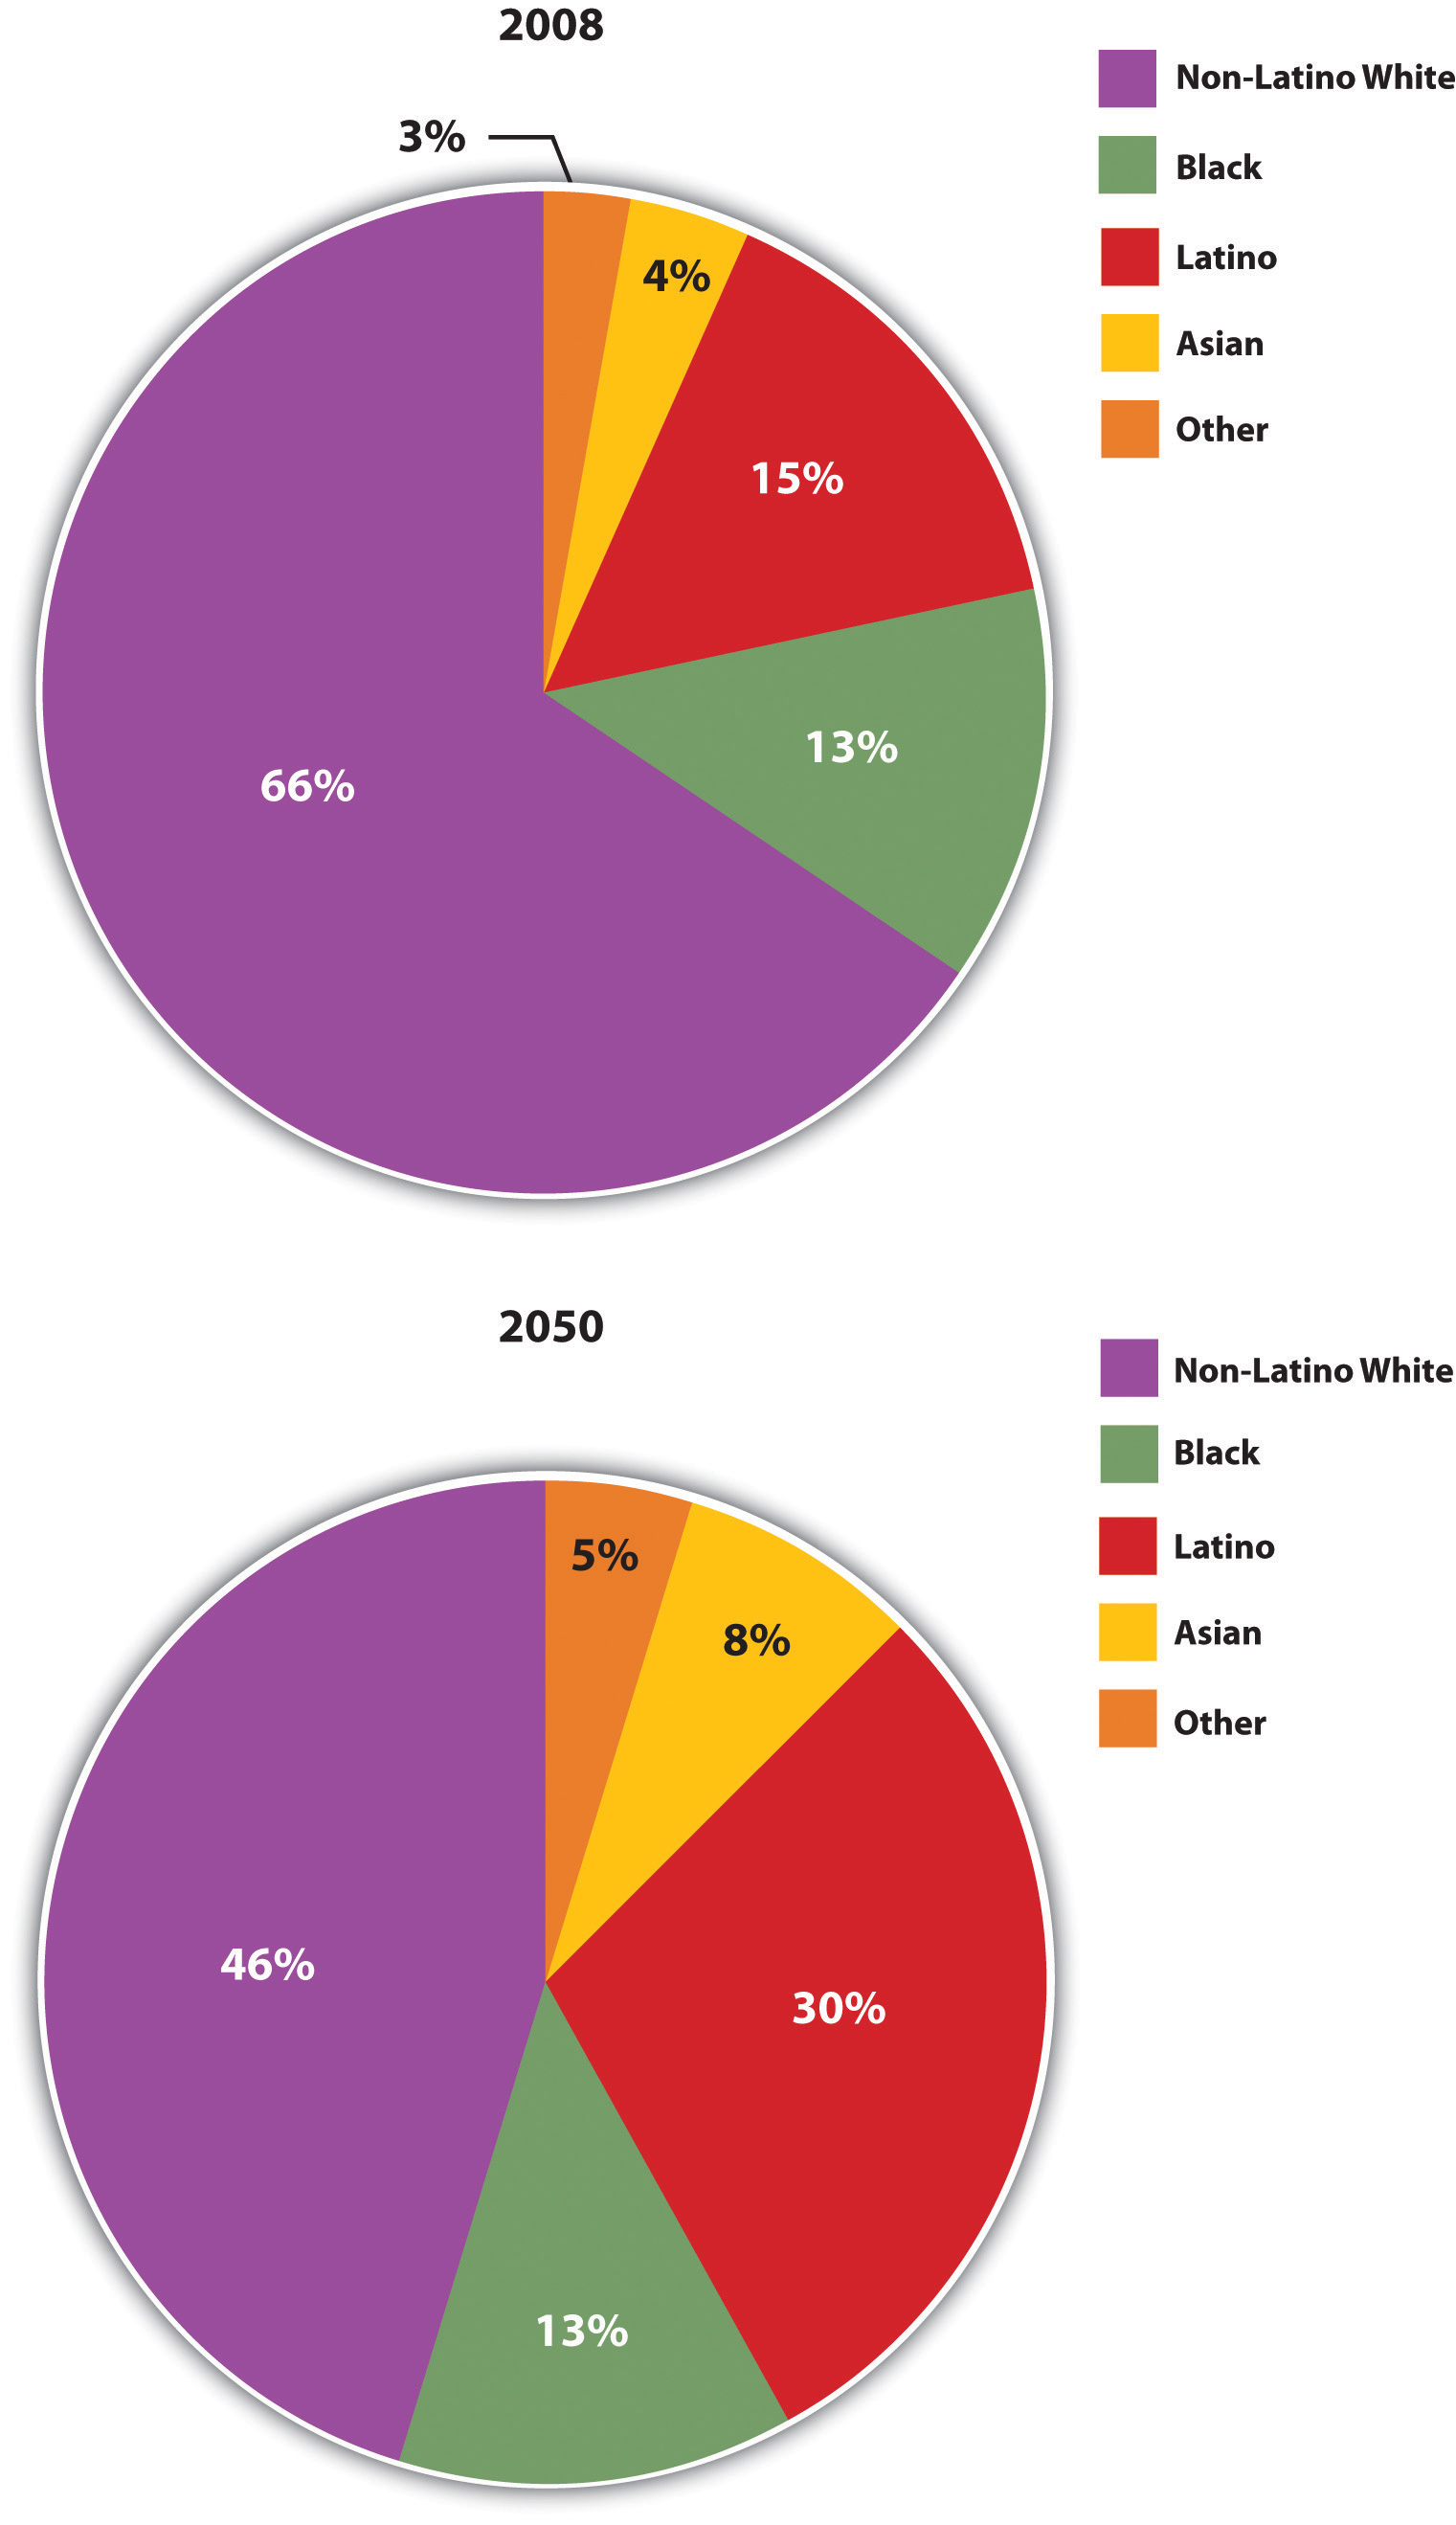 Racial and Ethnic Composition of the United States, 2008 and 2050 (Projected)